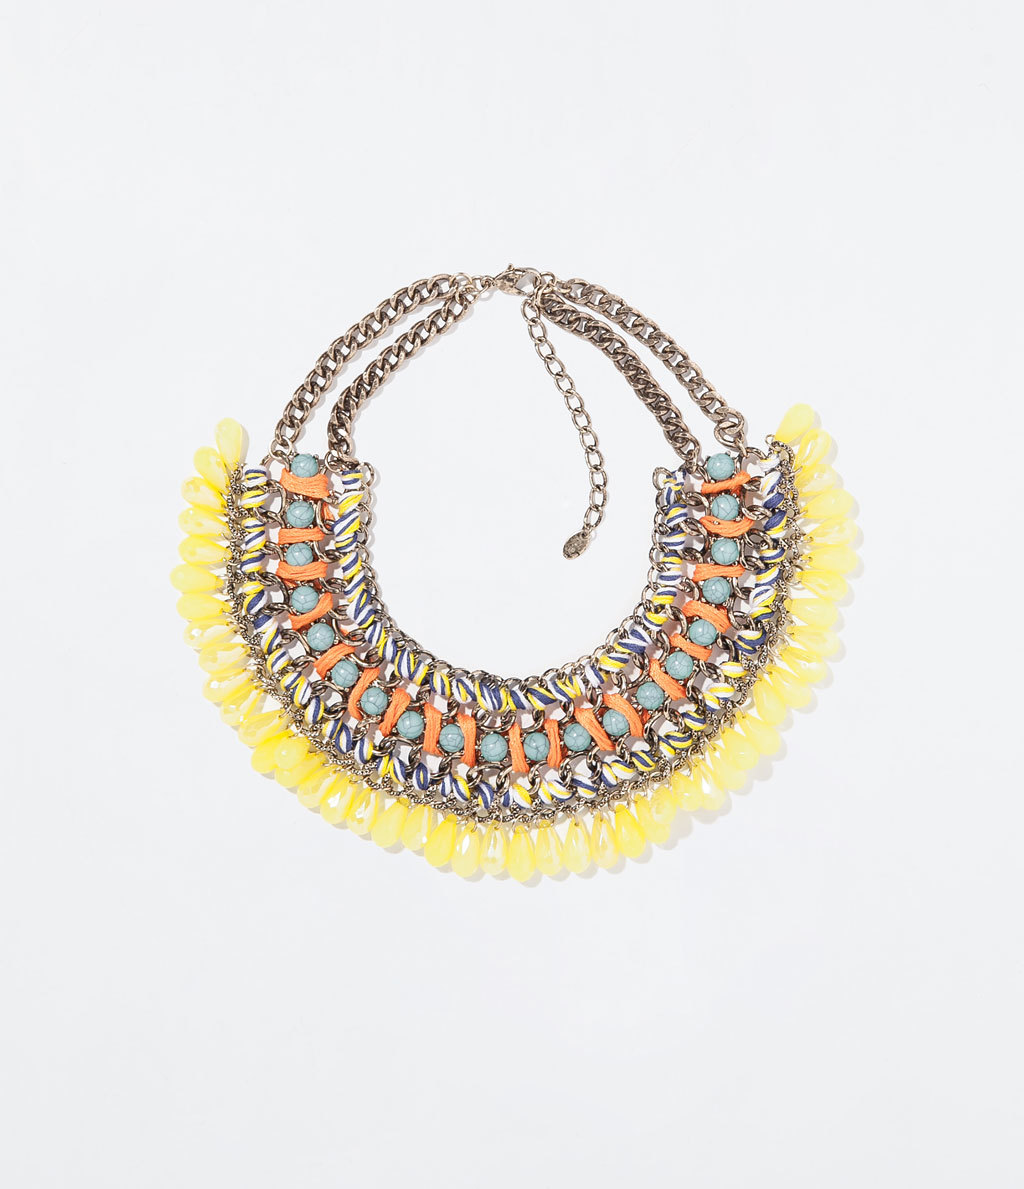 Diamante And Cord Necklace - occasions: evening, occasion, holiday; predominant colour: multicoloured; length: short; size: large/oversized; material: chain/metal; finish: plain; embellishment: beading; style: bib/statement; season: s/s 2014; multicoloured: multicoloured